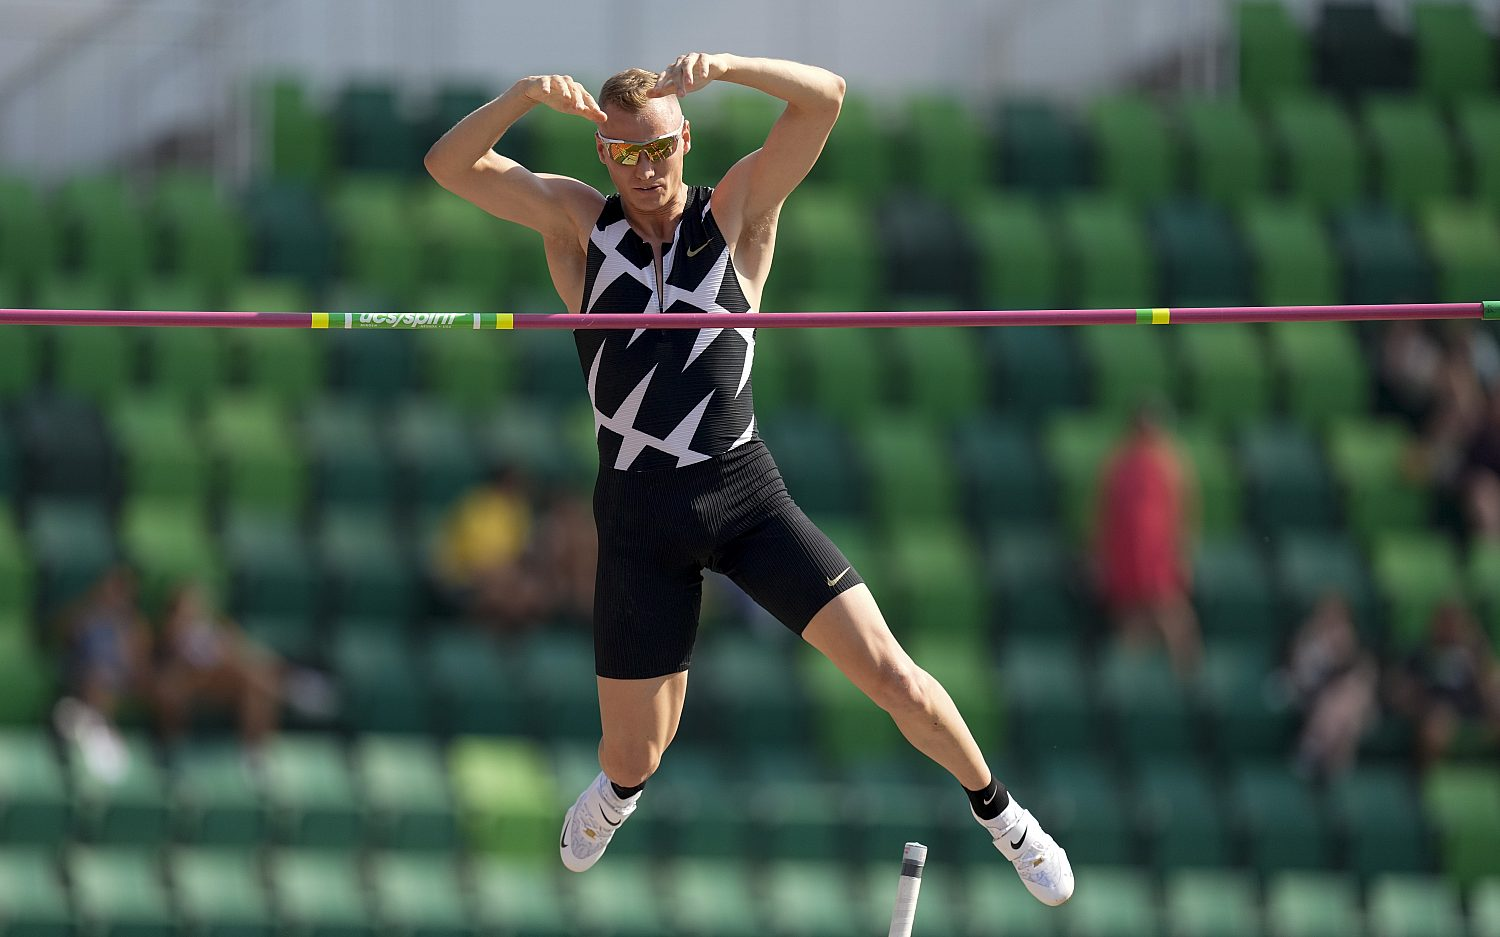 Champion pole vaulter tests positive for COVID